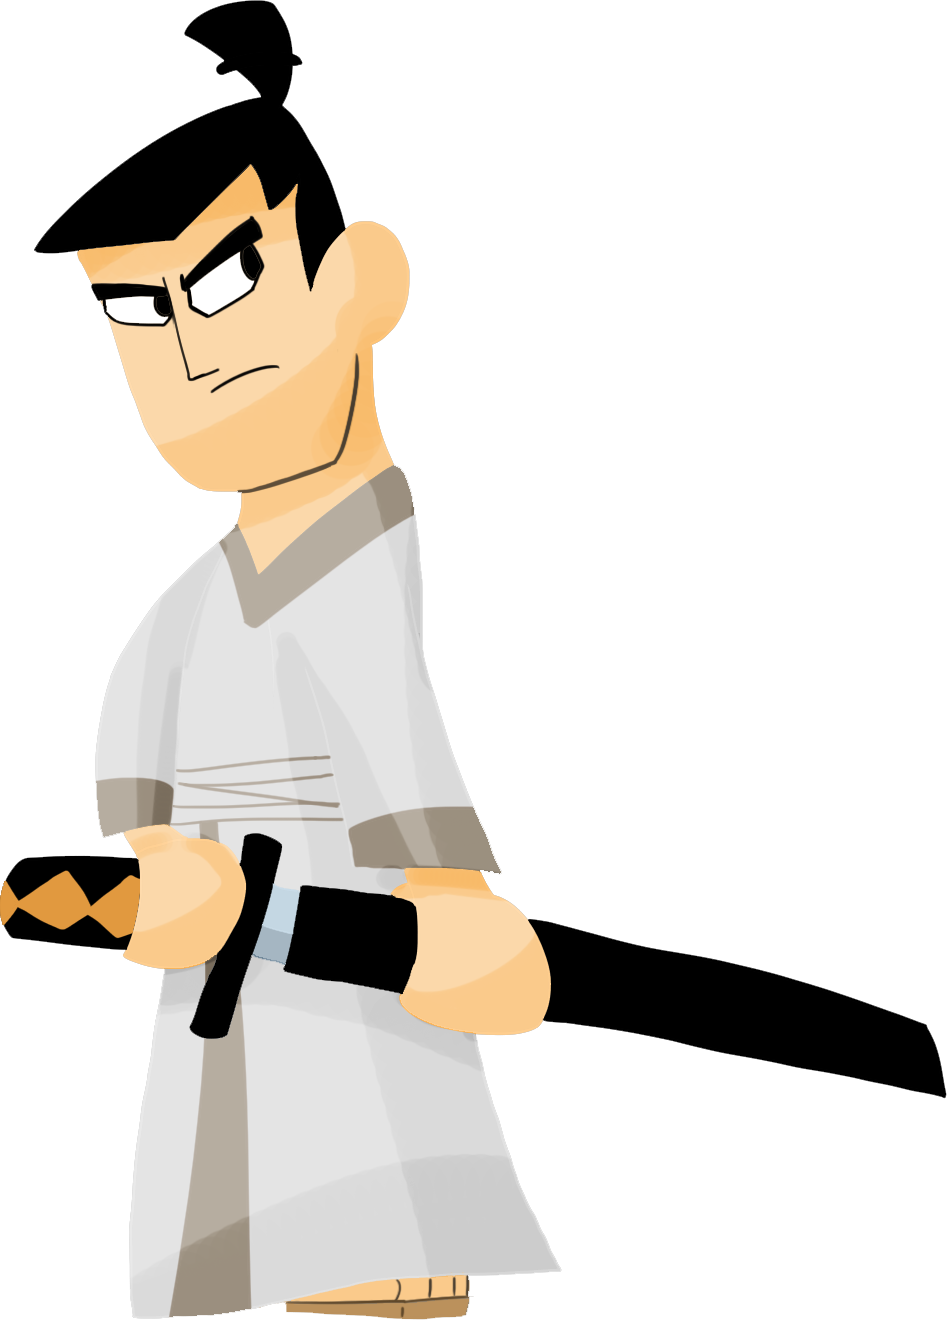 Samurai Jack by JuacoProductionsArts on DeviantArt